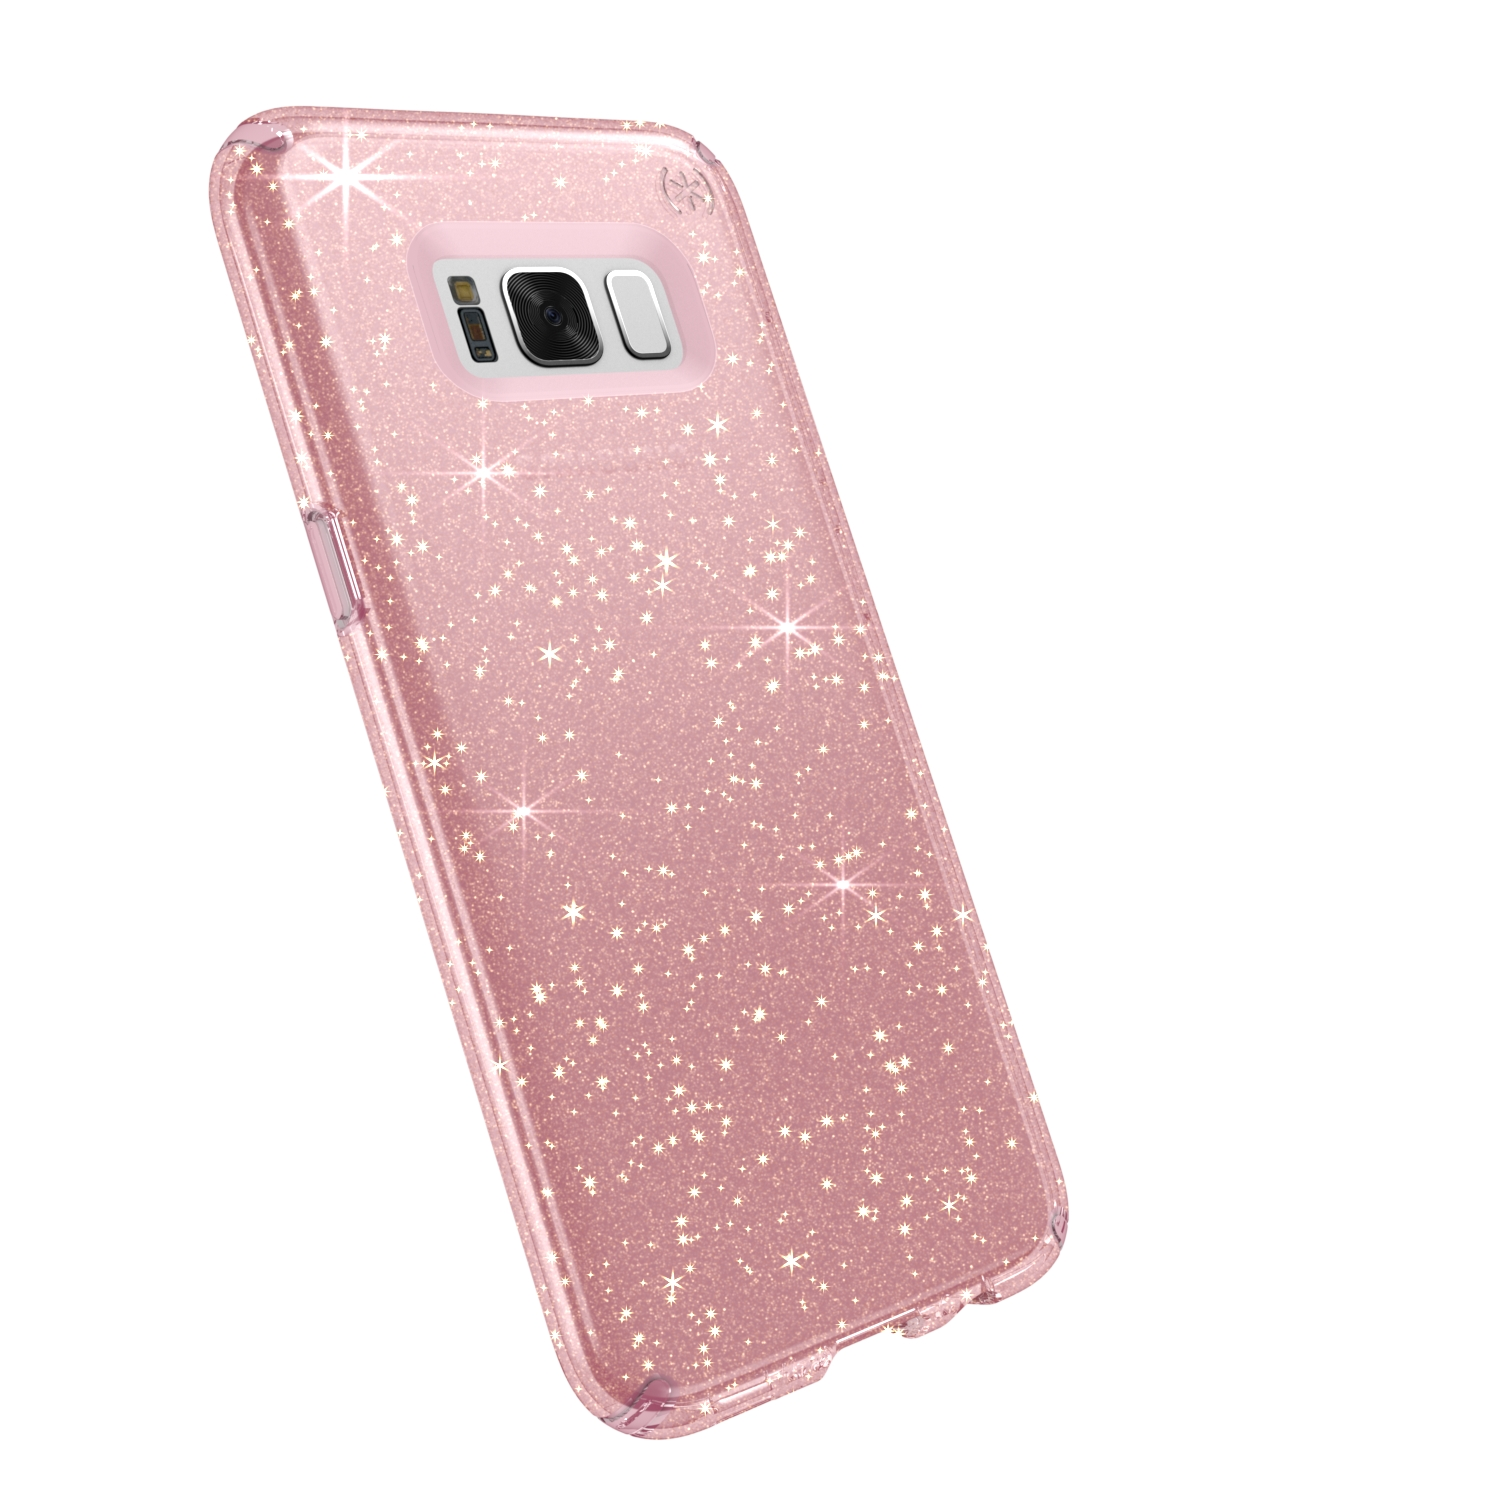 Search and compare best prices of Speck Presidio Clear with Glitter Samsung Galaxy S8 Plus Cases Rose Pink with Gold Glitter/Rose Pink in UK